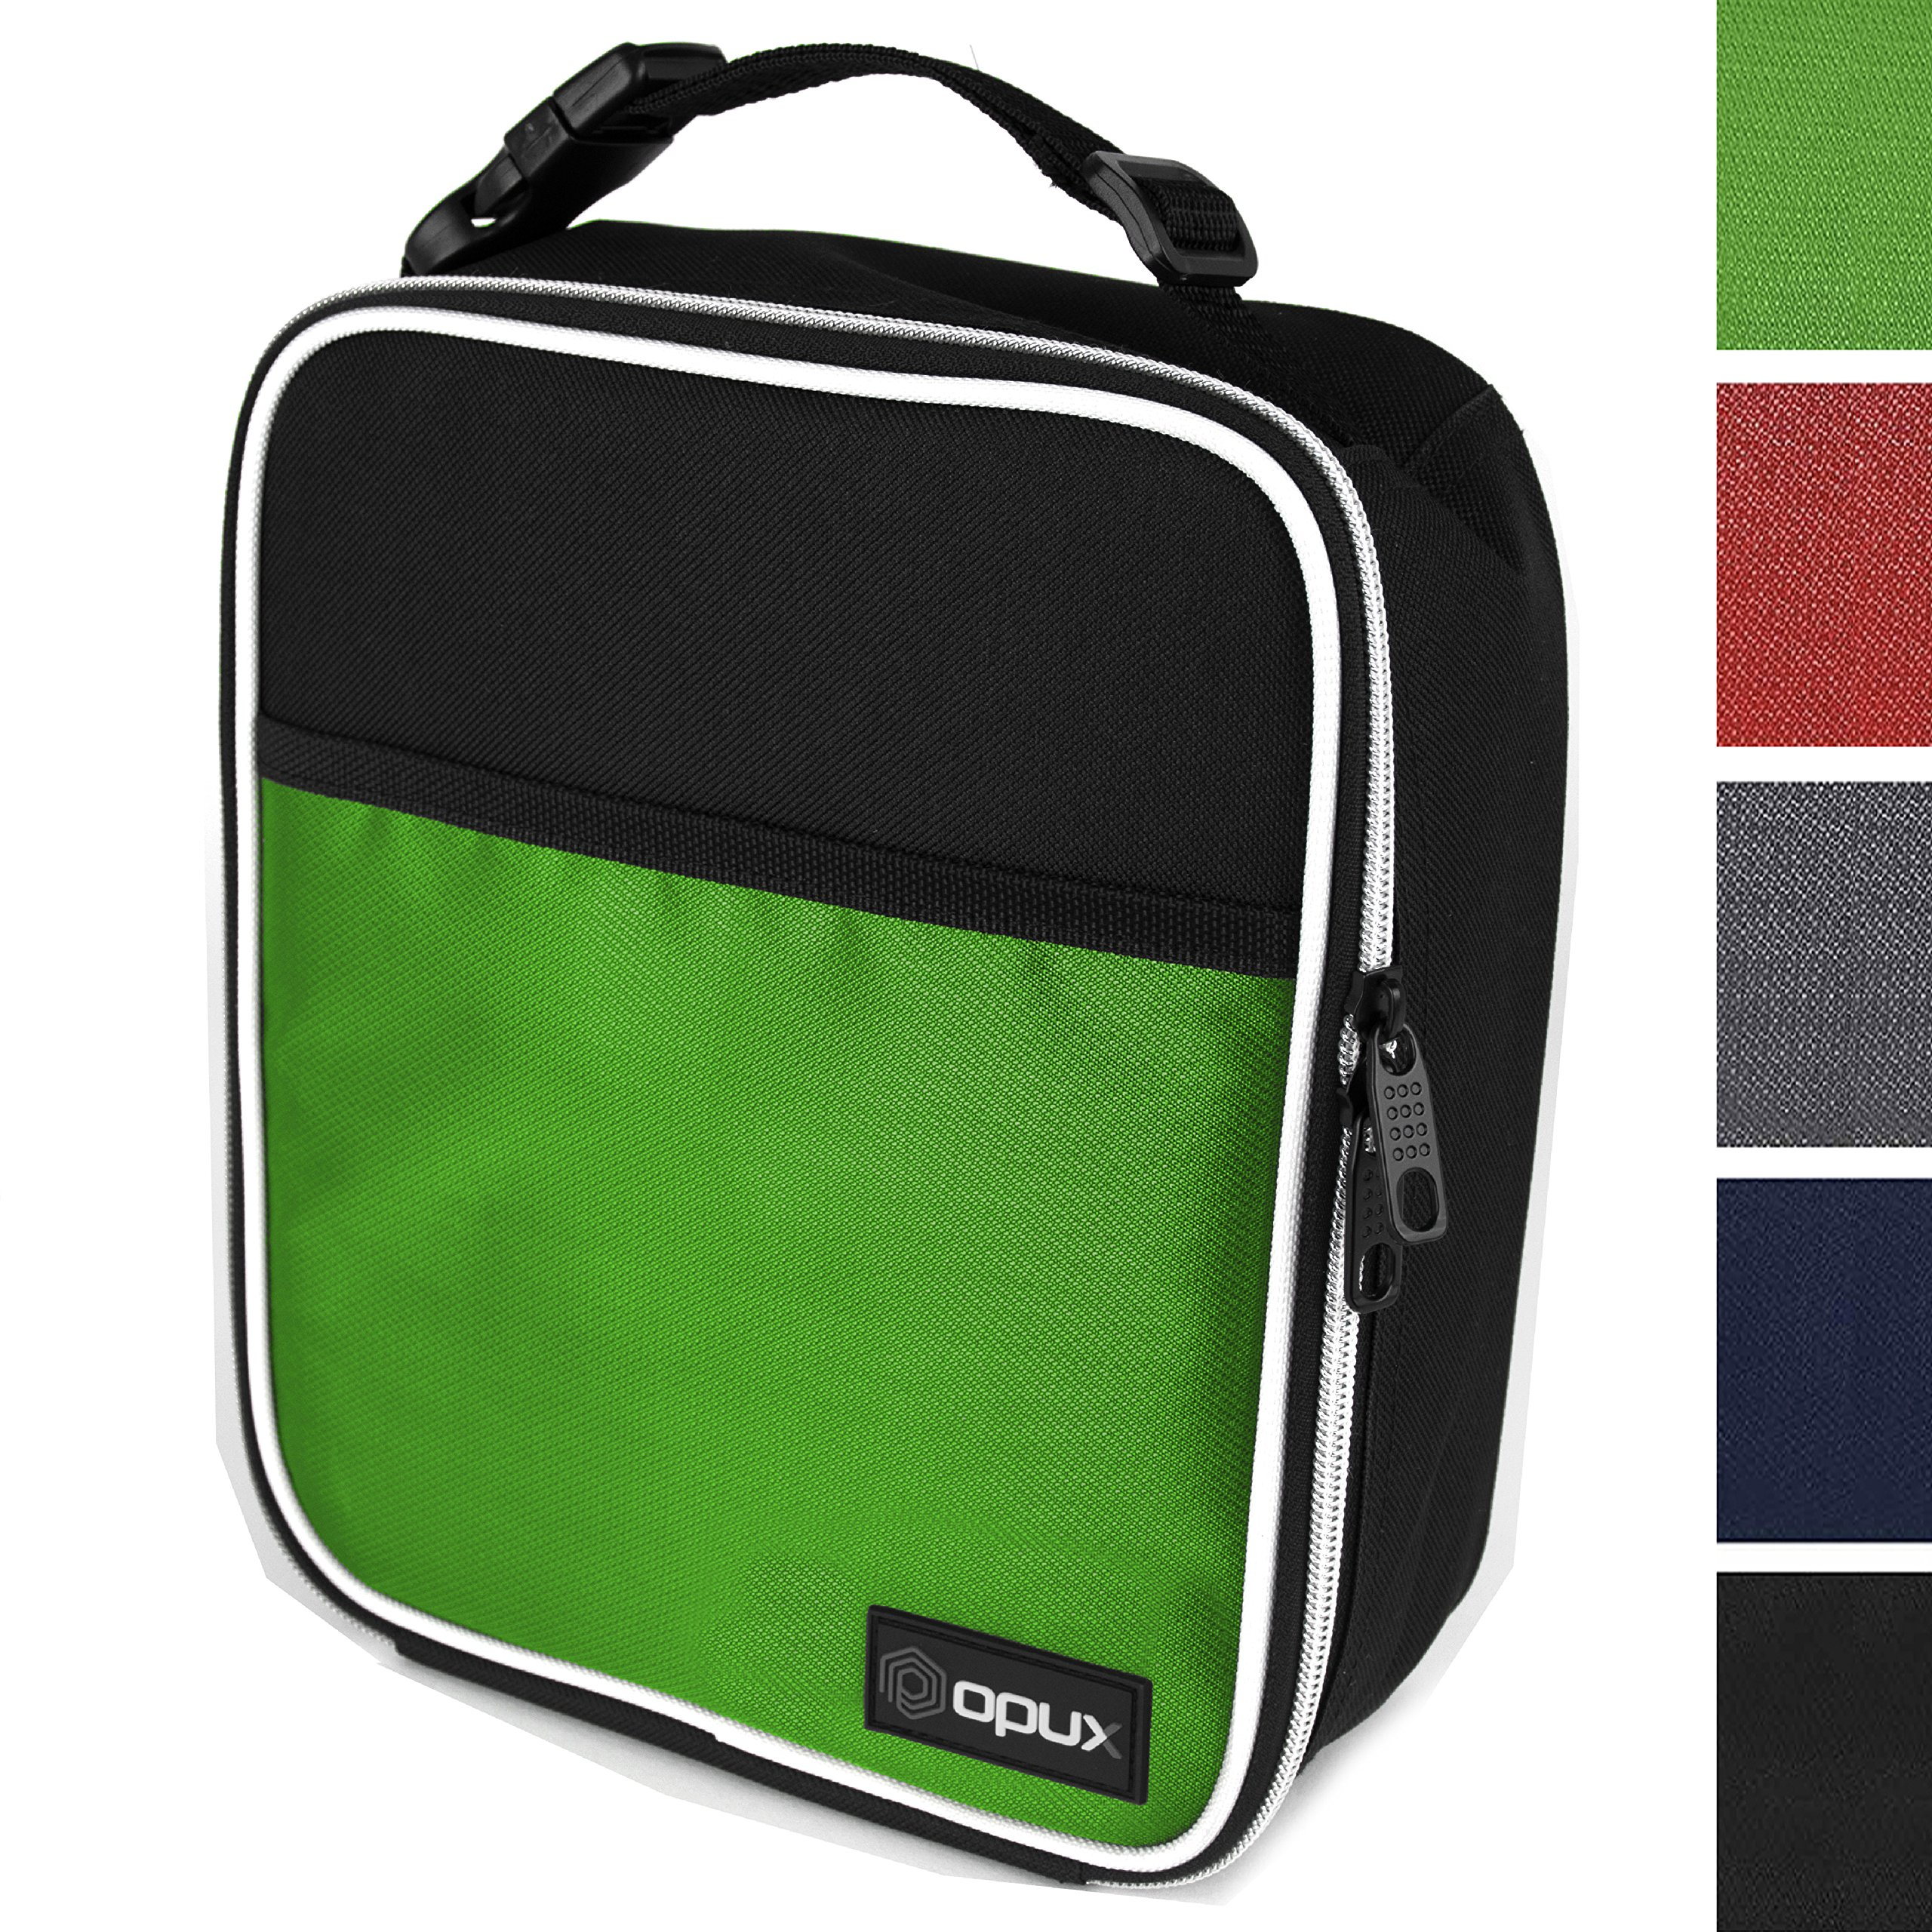 OPUX Premium Thermal Insulated Mini Lunch Bag | School Lunch Box For Boys, Girls, Kids, Adults | Soft Leakproof Liner | Compact Lunch Pail for Office (Green)